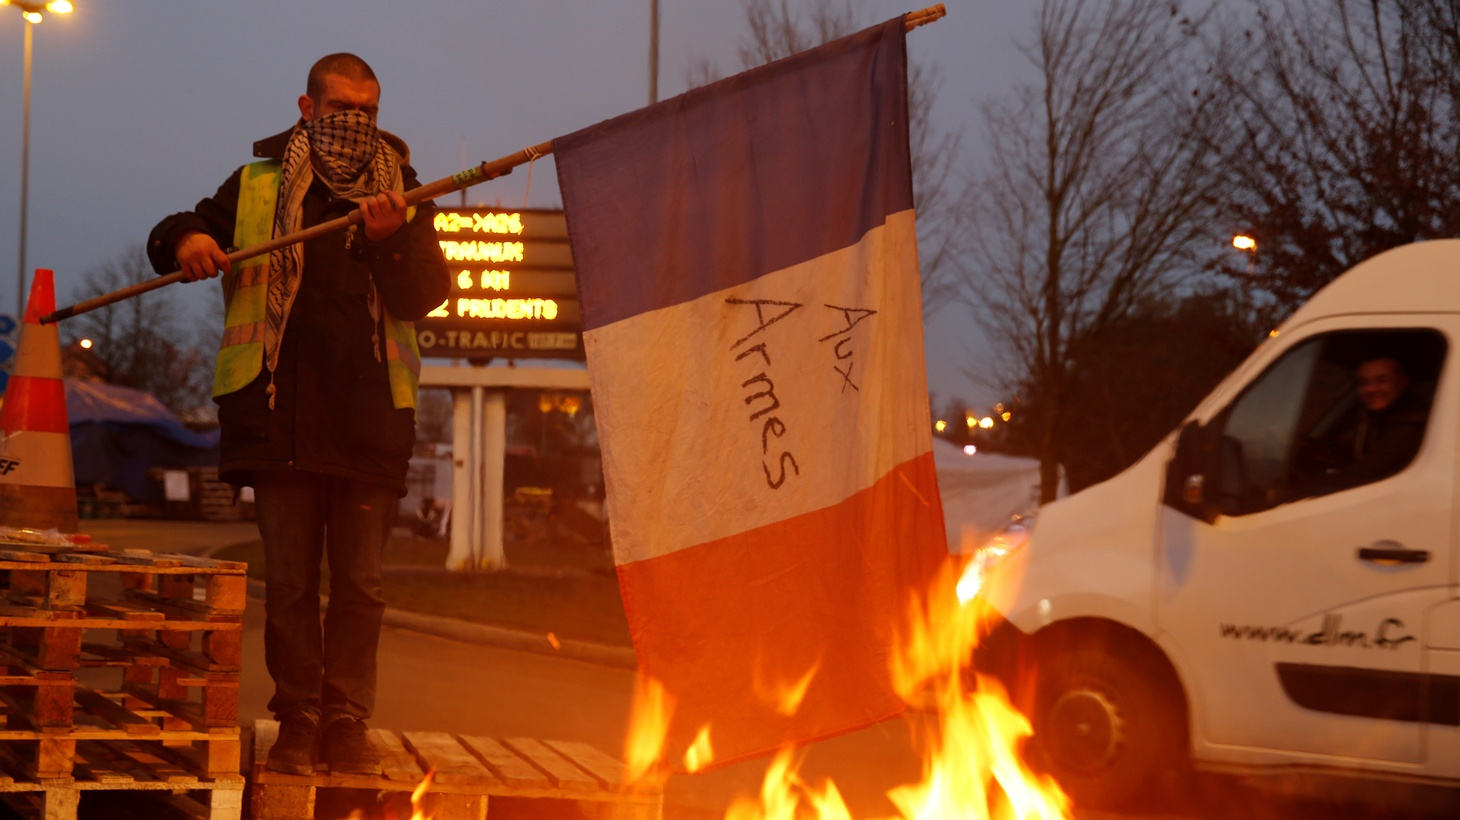 A protester wearing a yellow vest, the symbol of a French drivers' protest against higher diesel fuel prices, holds a flag near burning debris at the approach to the A2 Paris-Brussels Motorway, in Fontaine-Notre-Dame, France, December 4, 2018.